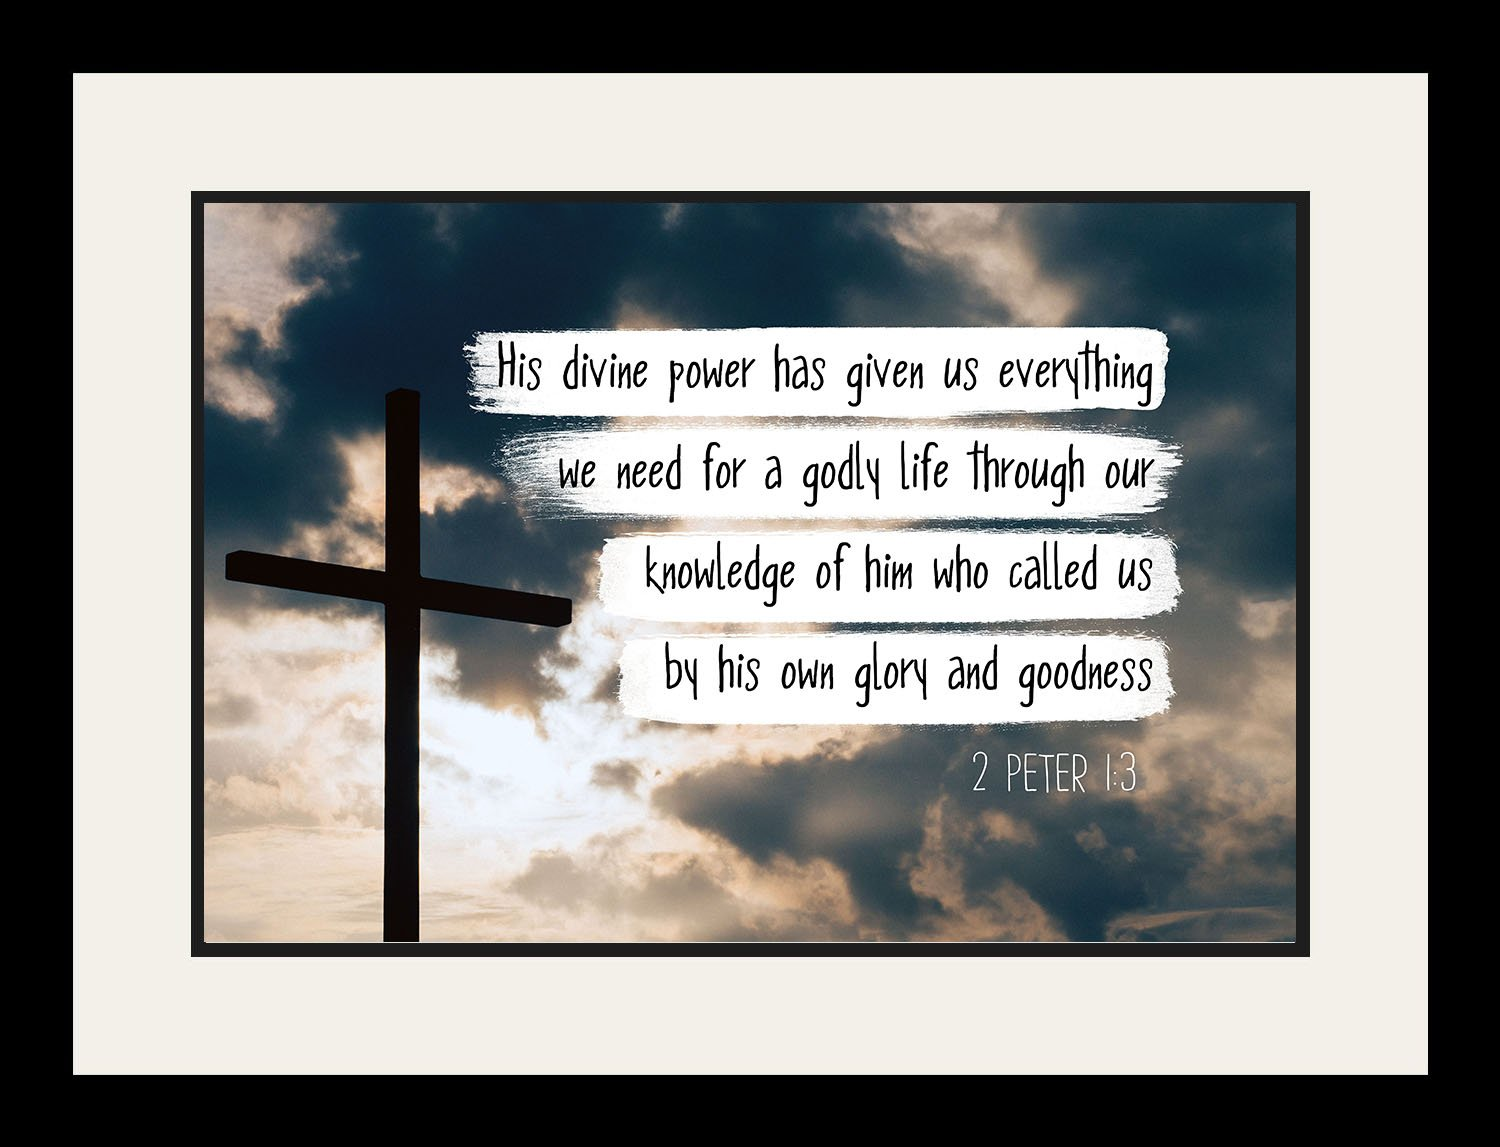 2 Peter 1:3 His divine power - Christian Poster, Print, Picture or Framed Wall Art Decor - Bible Verse Collection - Religious Gift for Holidays Christmas Baptism (19x25 Framed)